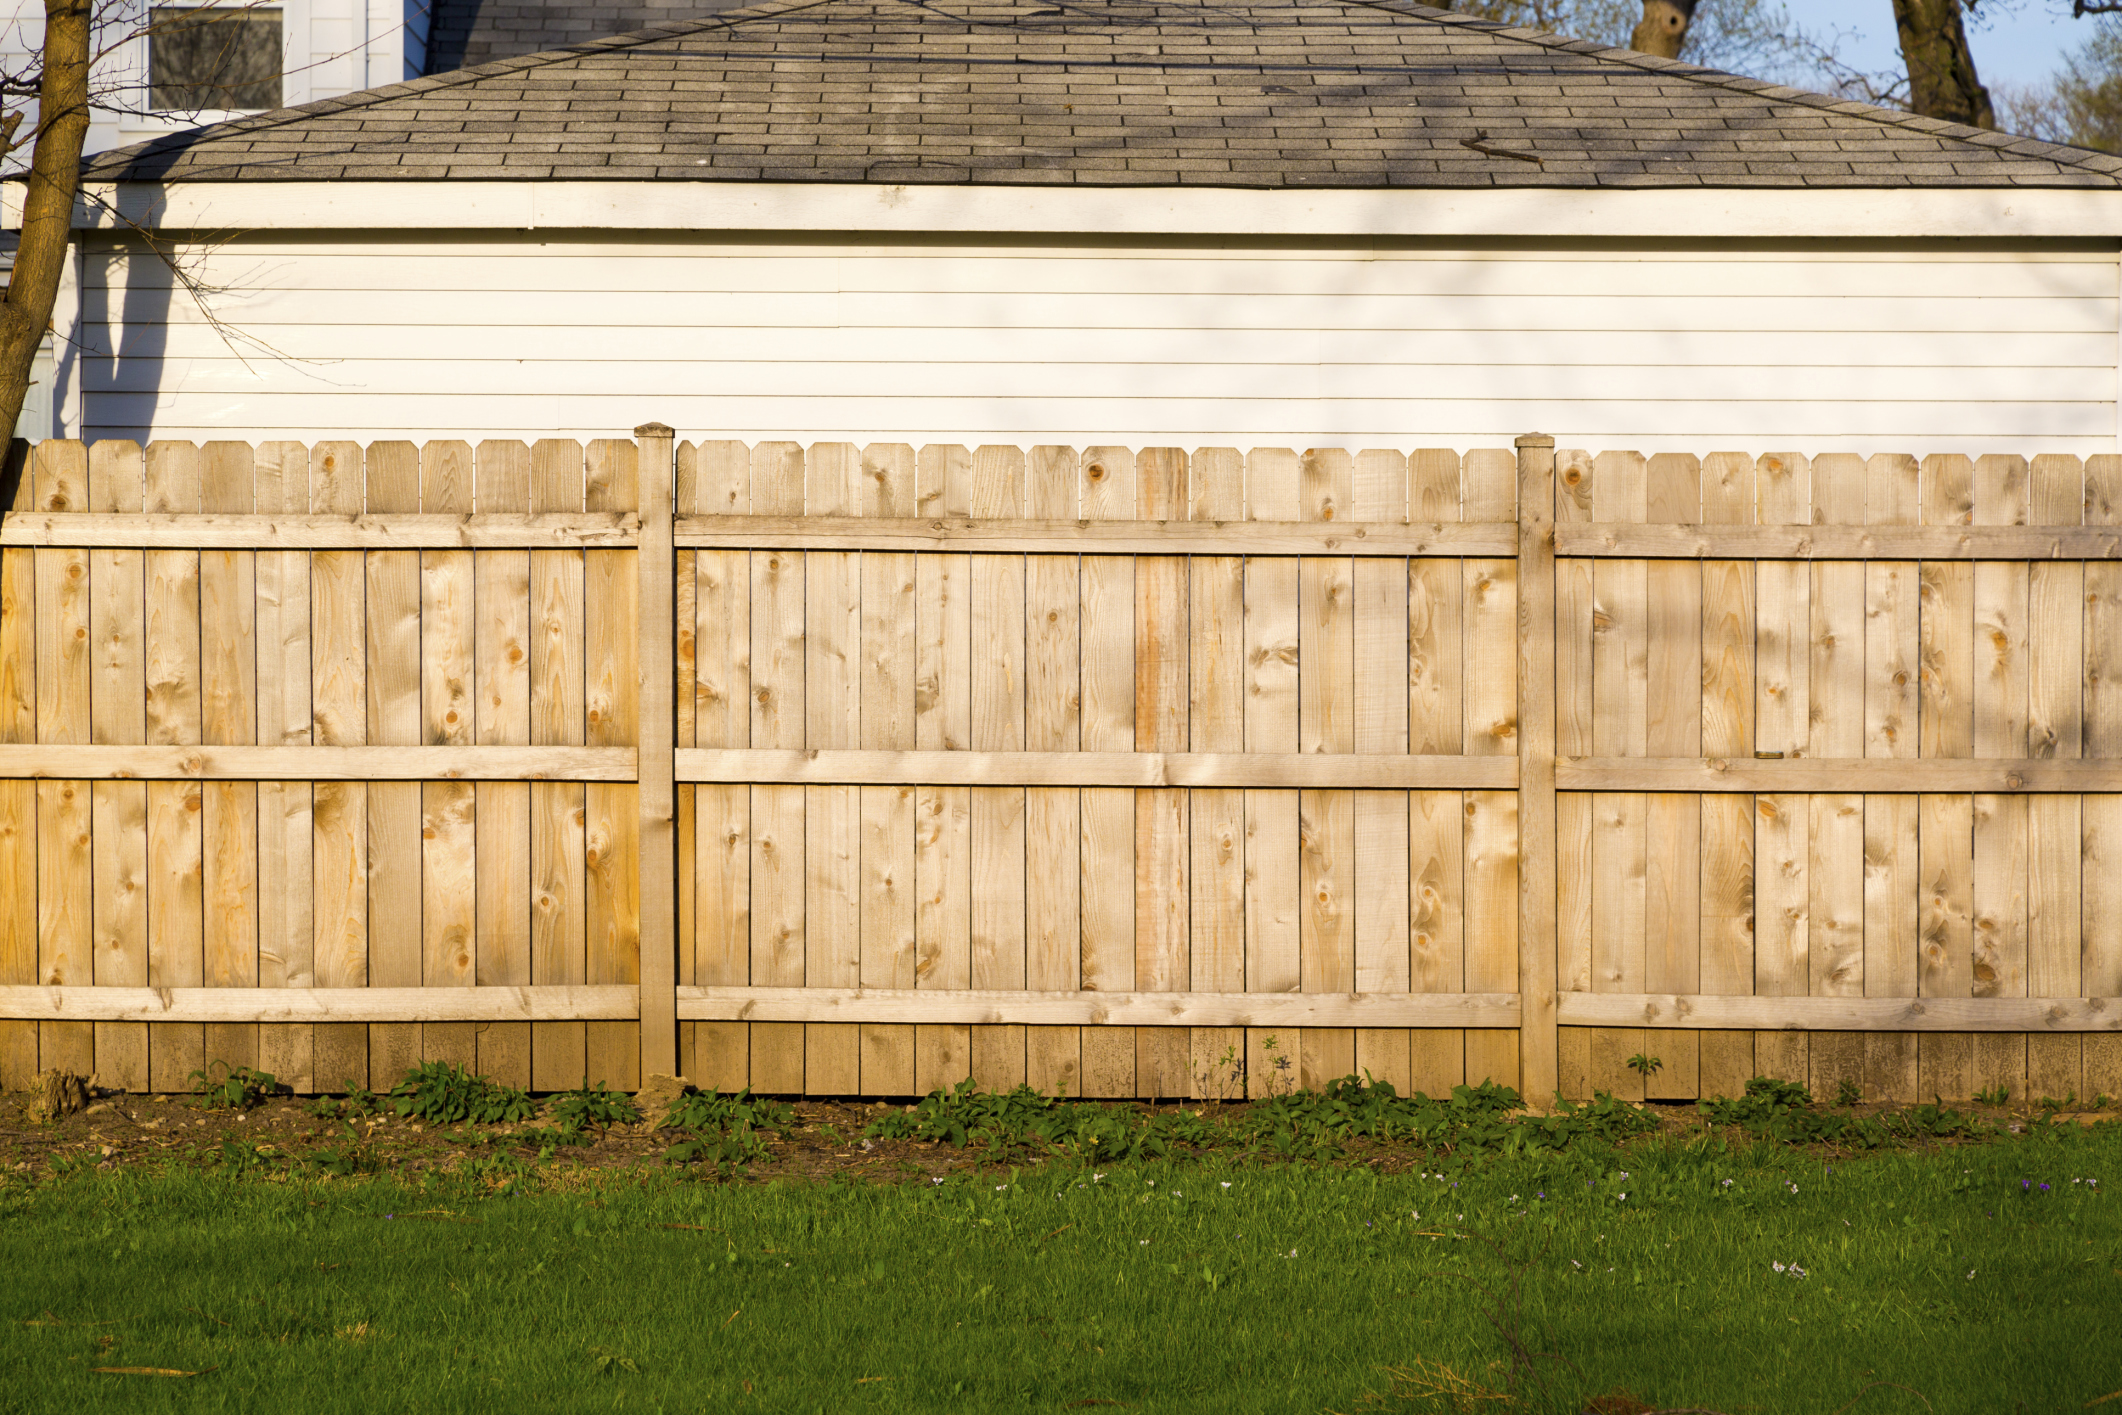 Wood Privacy Fence Vs Vinyl Privacy Fence In Ellicott City